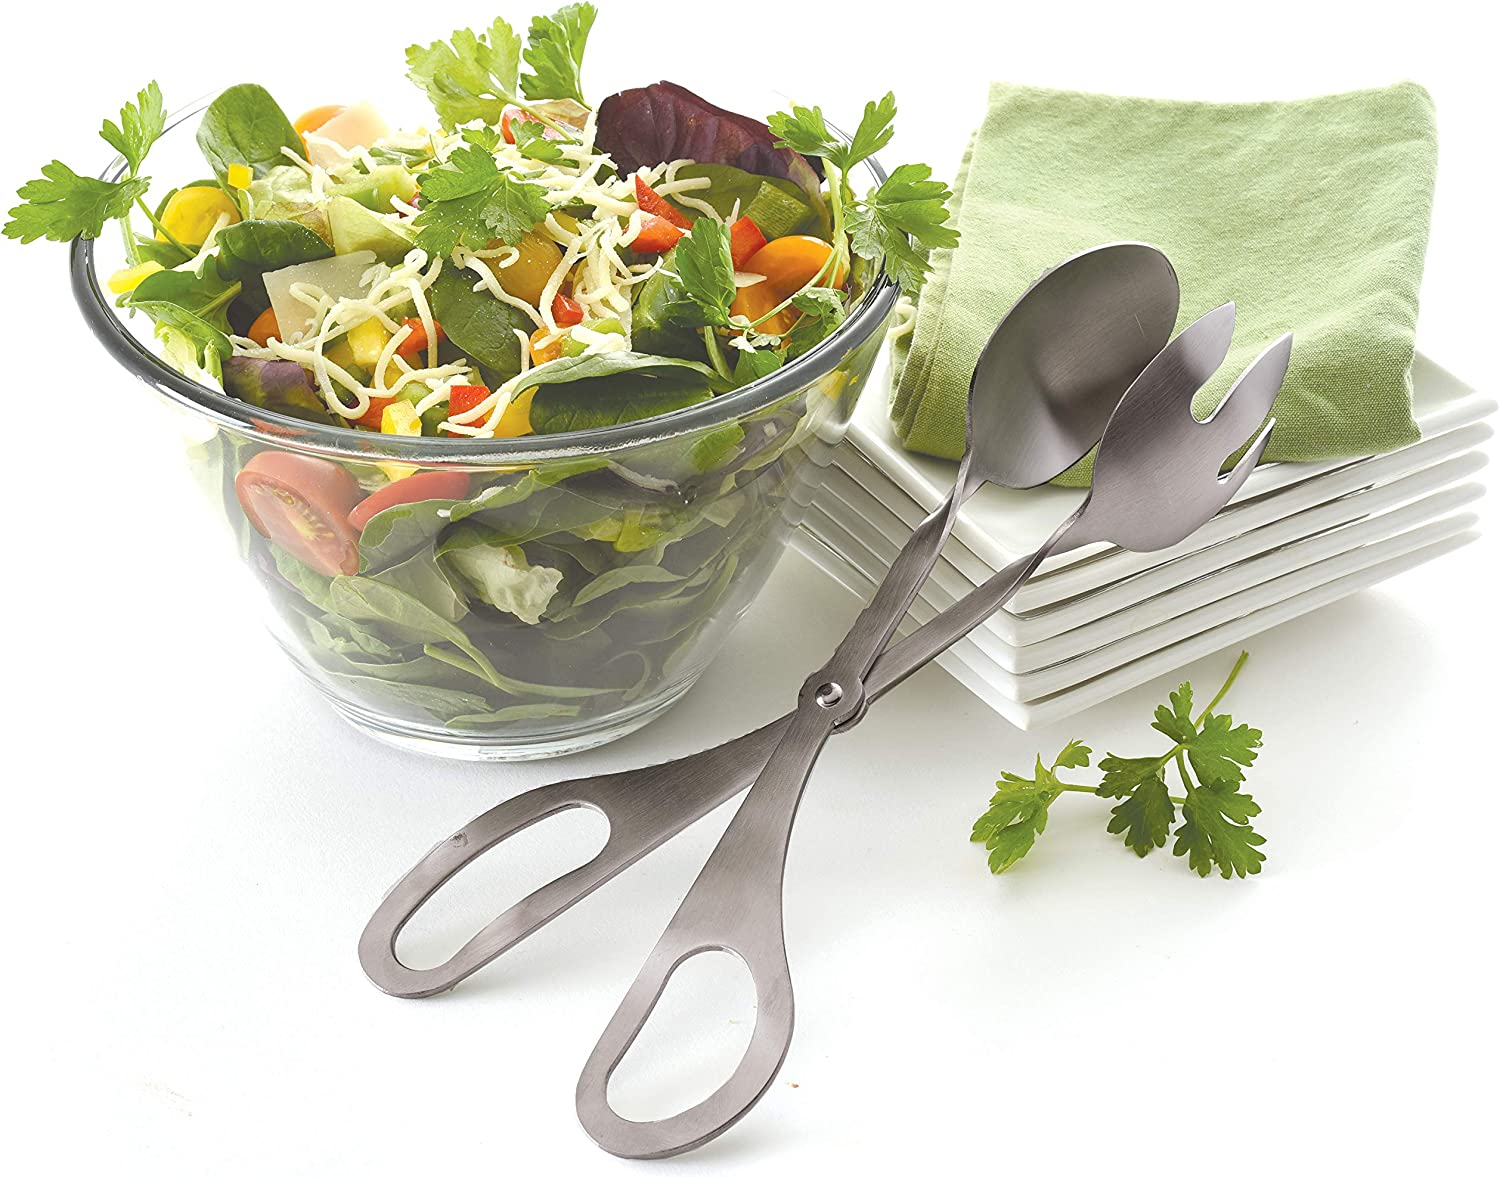 Norpro 18//10 Stainless Steel Deluxe Salad Tongs For Tossing And Serving  1967